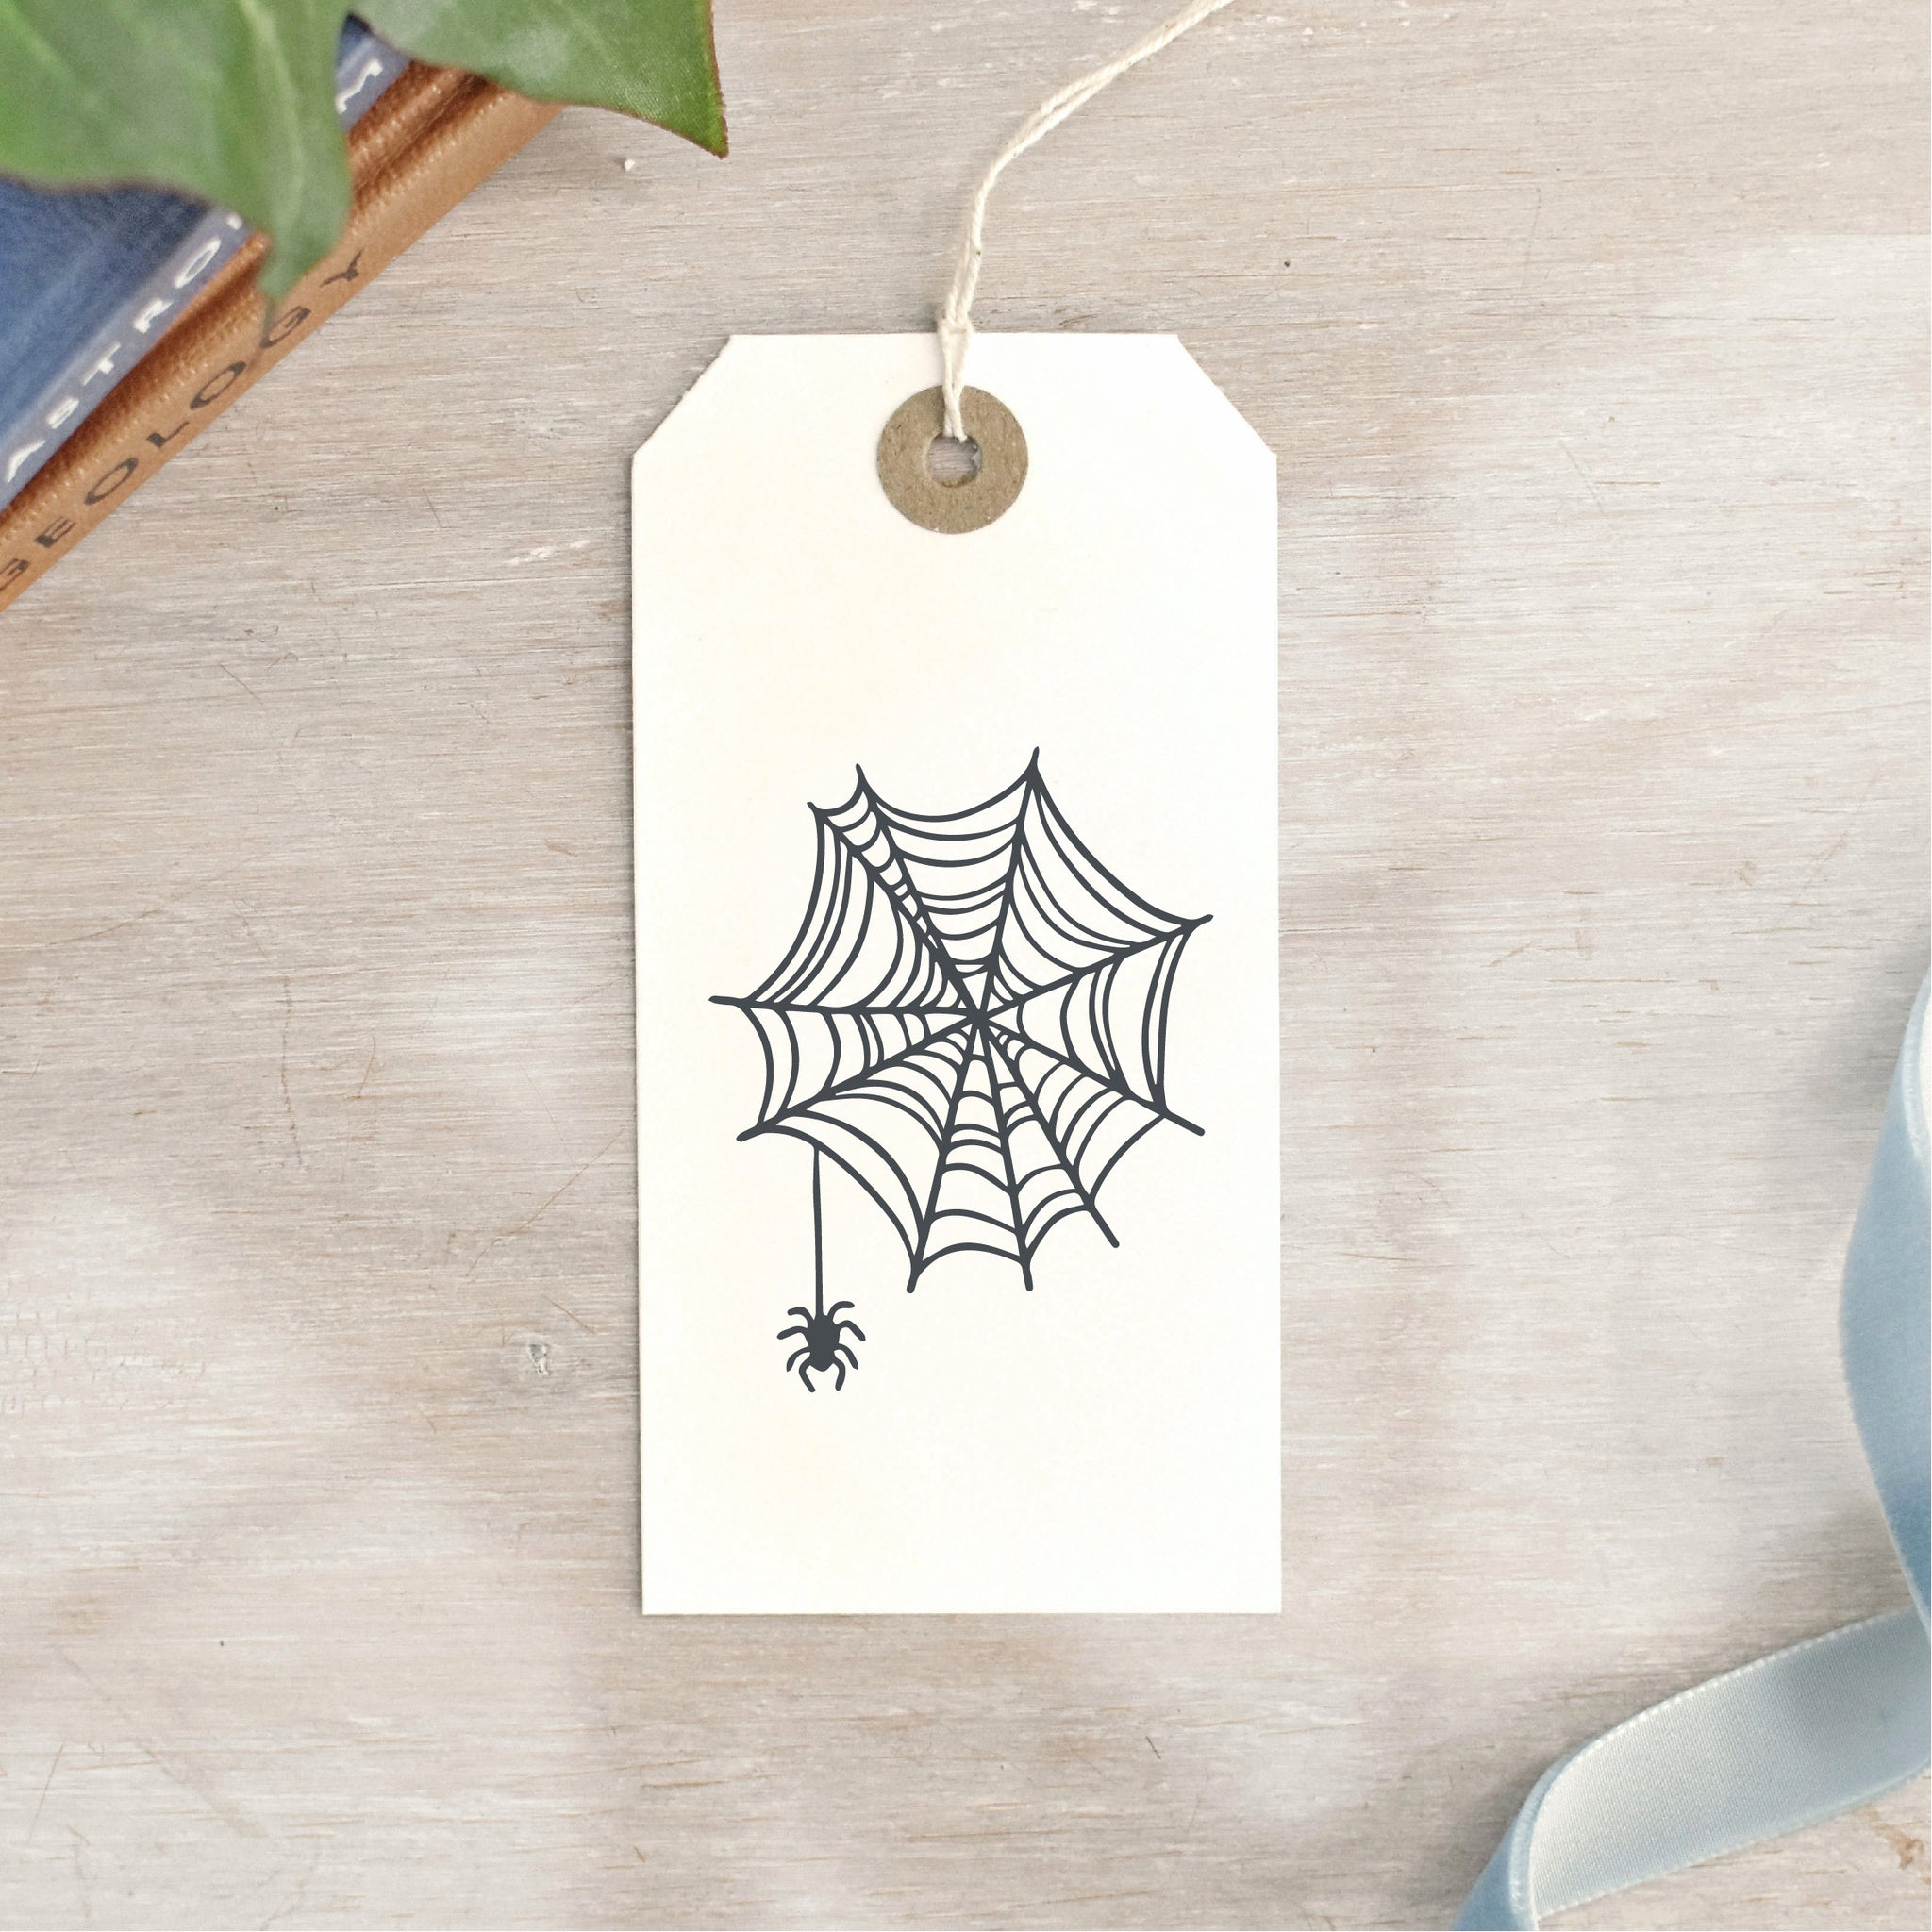 Cobweb and Spider Halloween Stamp